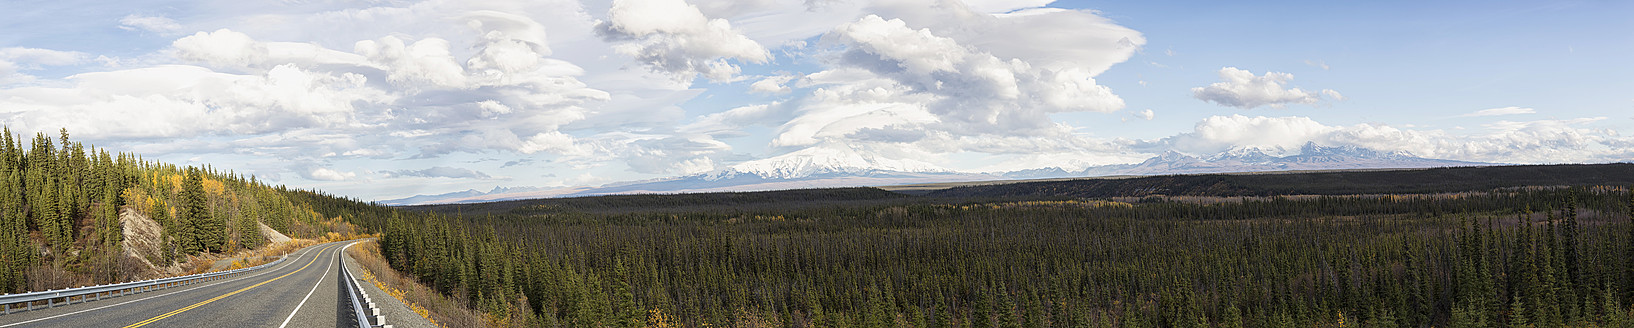 USA, Alaska, View of Mount Sanford and Mount Drum - FO004644